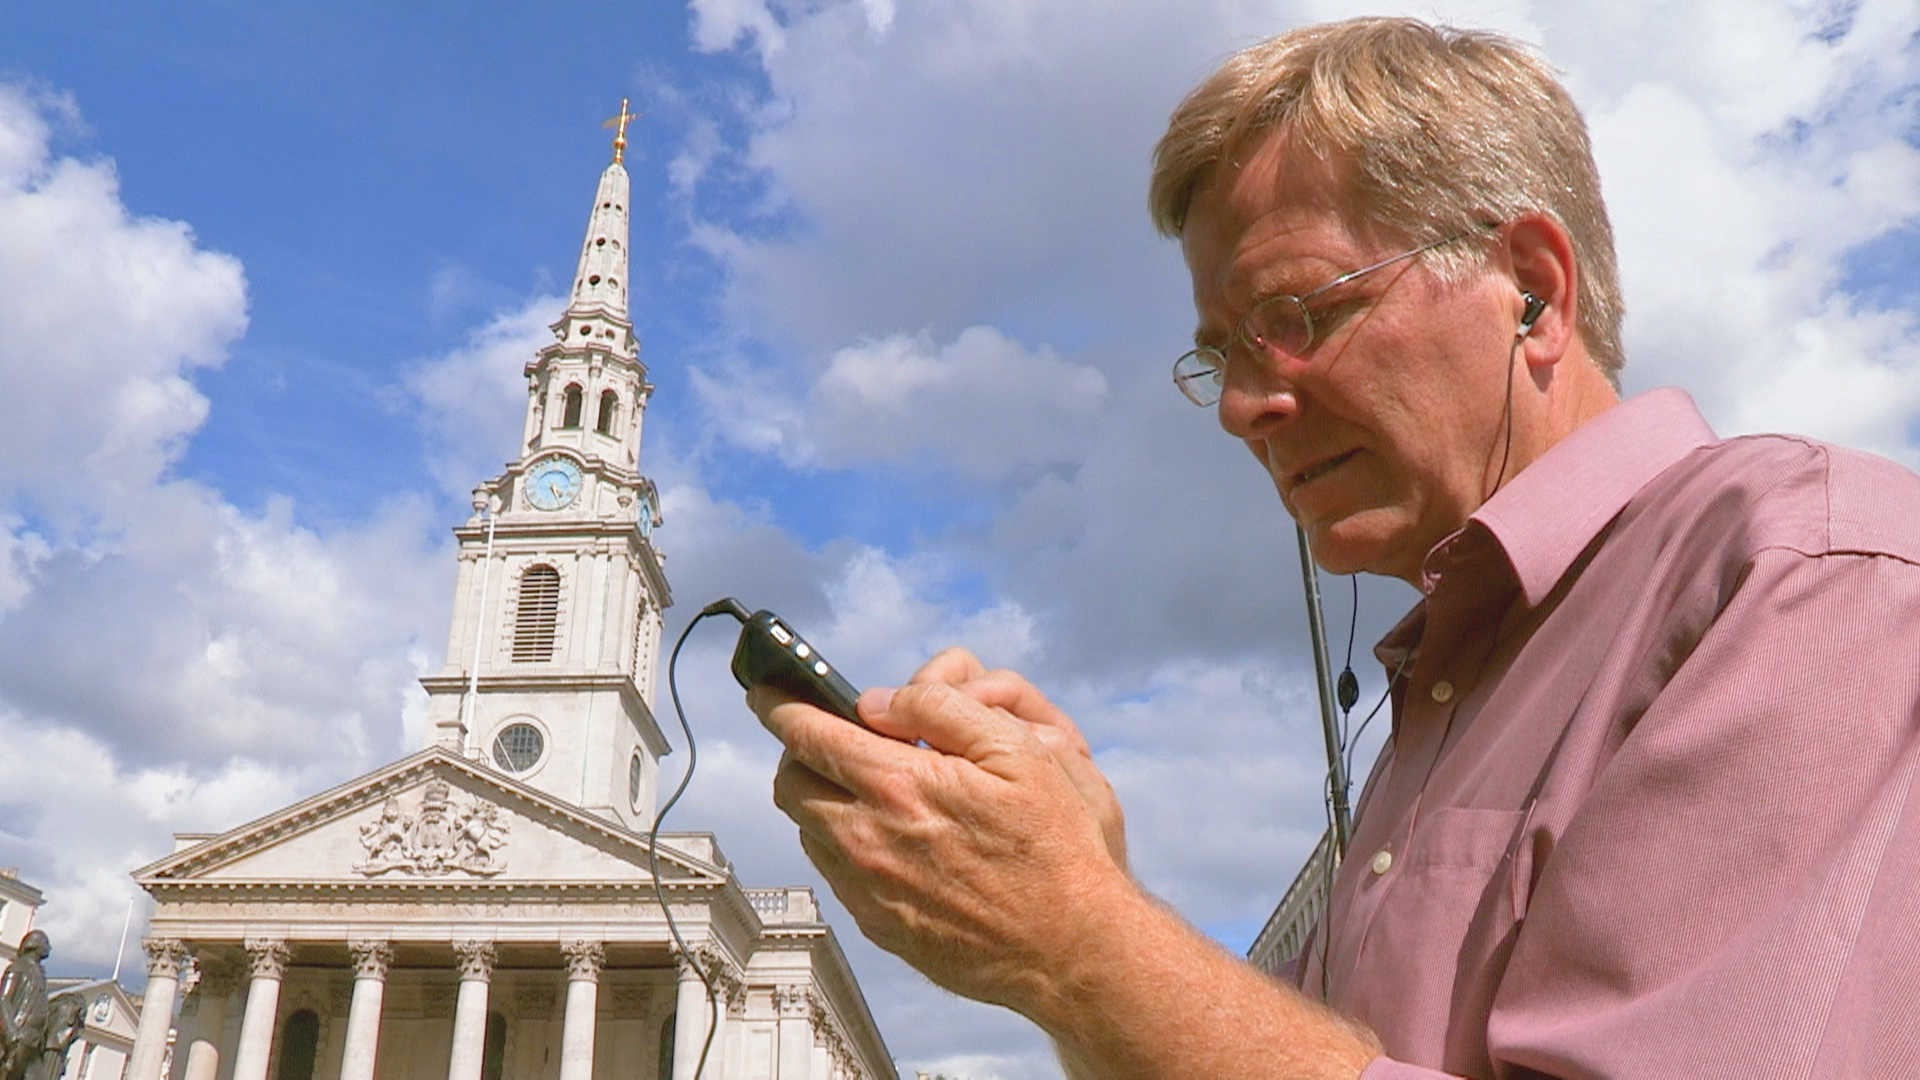 Rick Steves uses his iPhone for audio tours